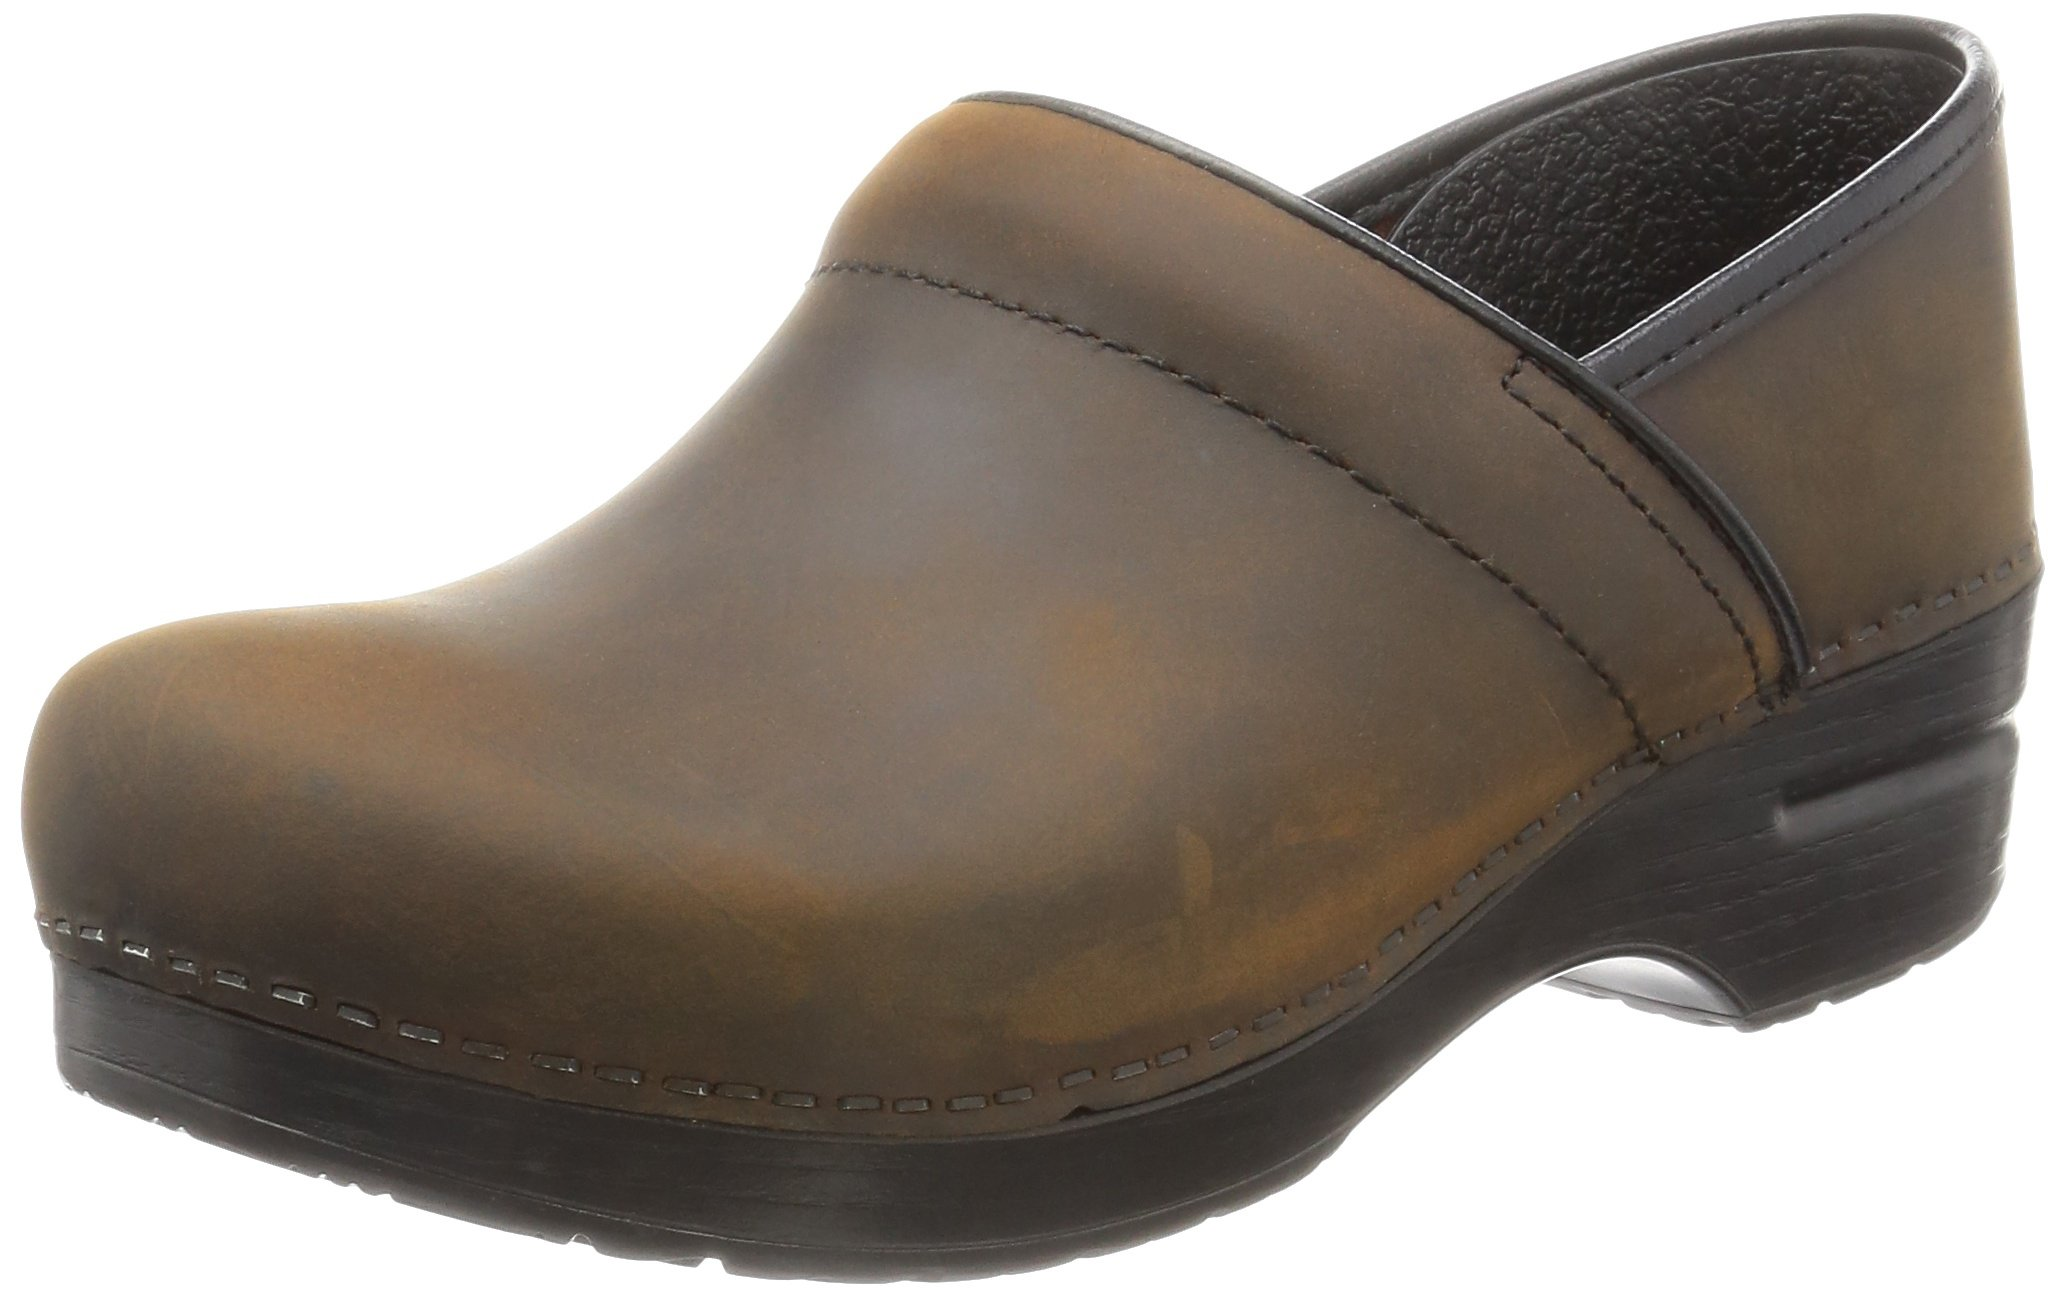 Dansko Women's Professional Oiled Leather Clog,Antique Brown/Black,38 EU / 7.5-8 B(M) US